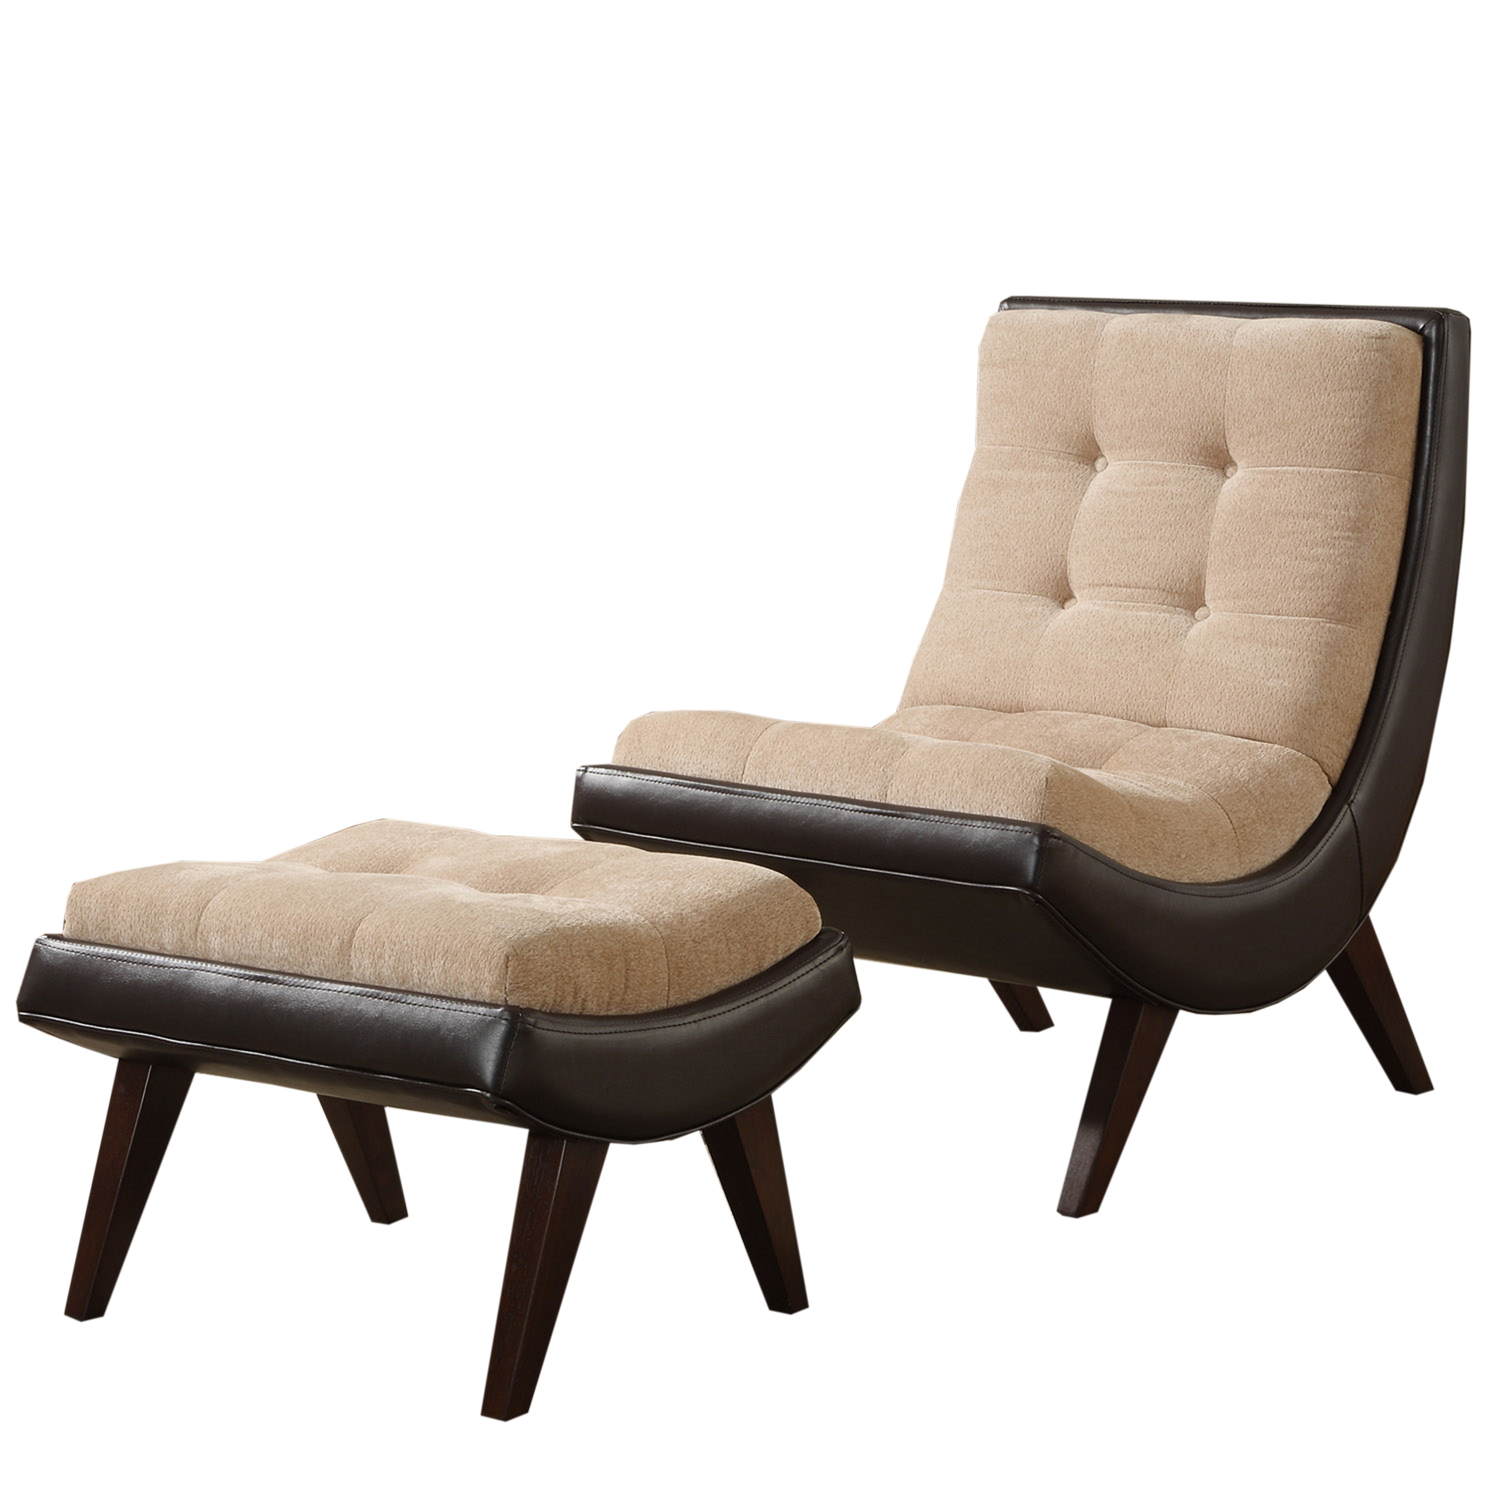 Two-tone Peat Velvet Faux Leather Chair with Ottoman                                                                             at mygofer.com